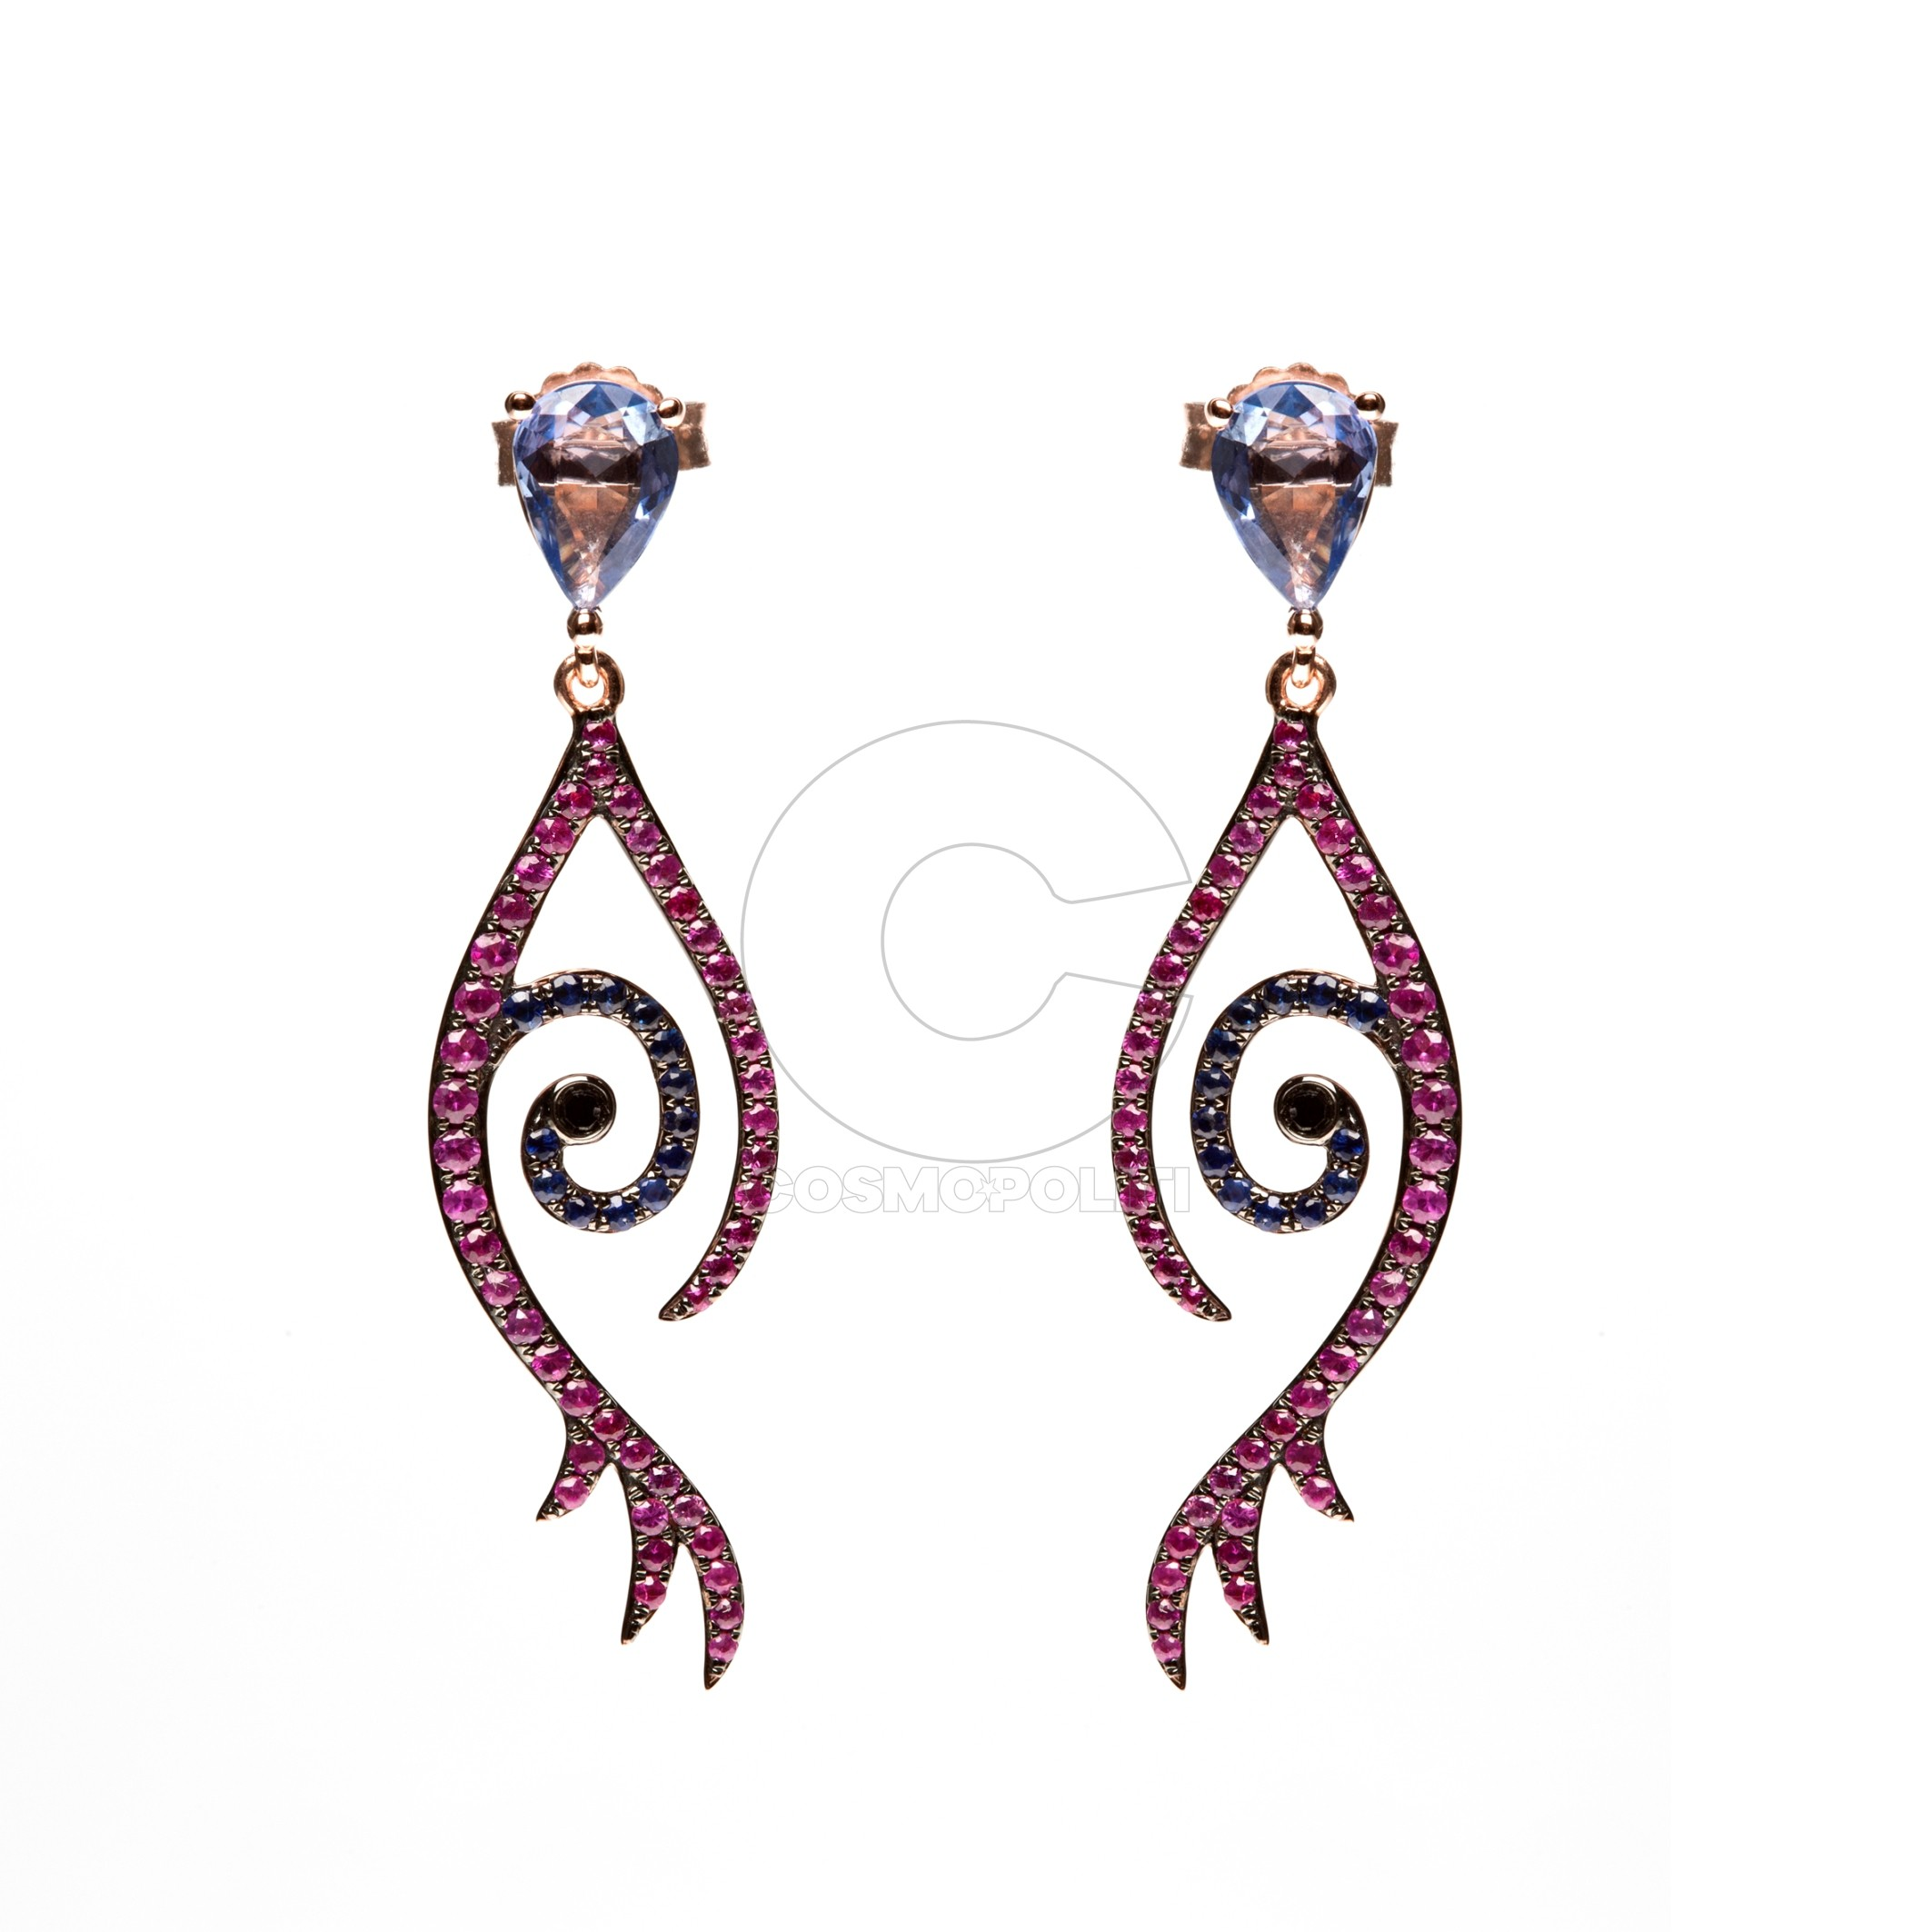 Tattoo Collection Earring in 18k gold with black diamonds, pink and blue sapphires and blue rose cut sapphires